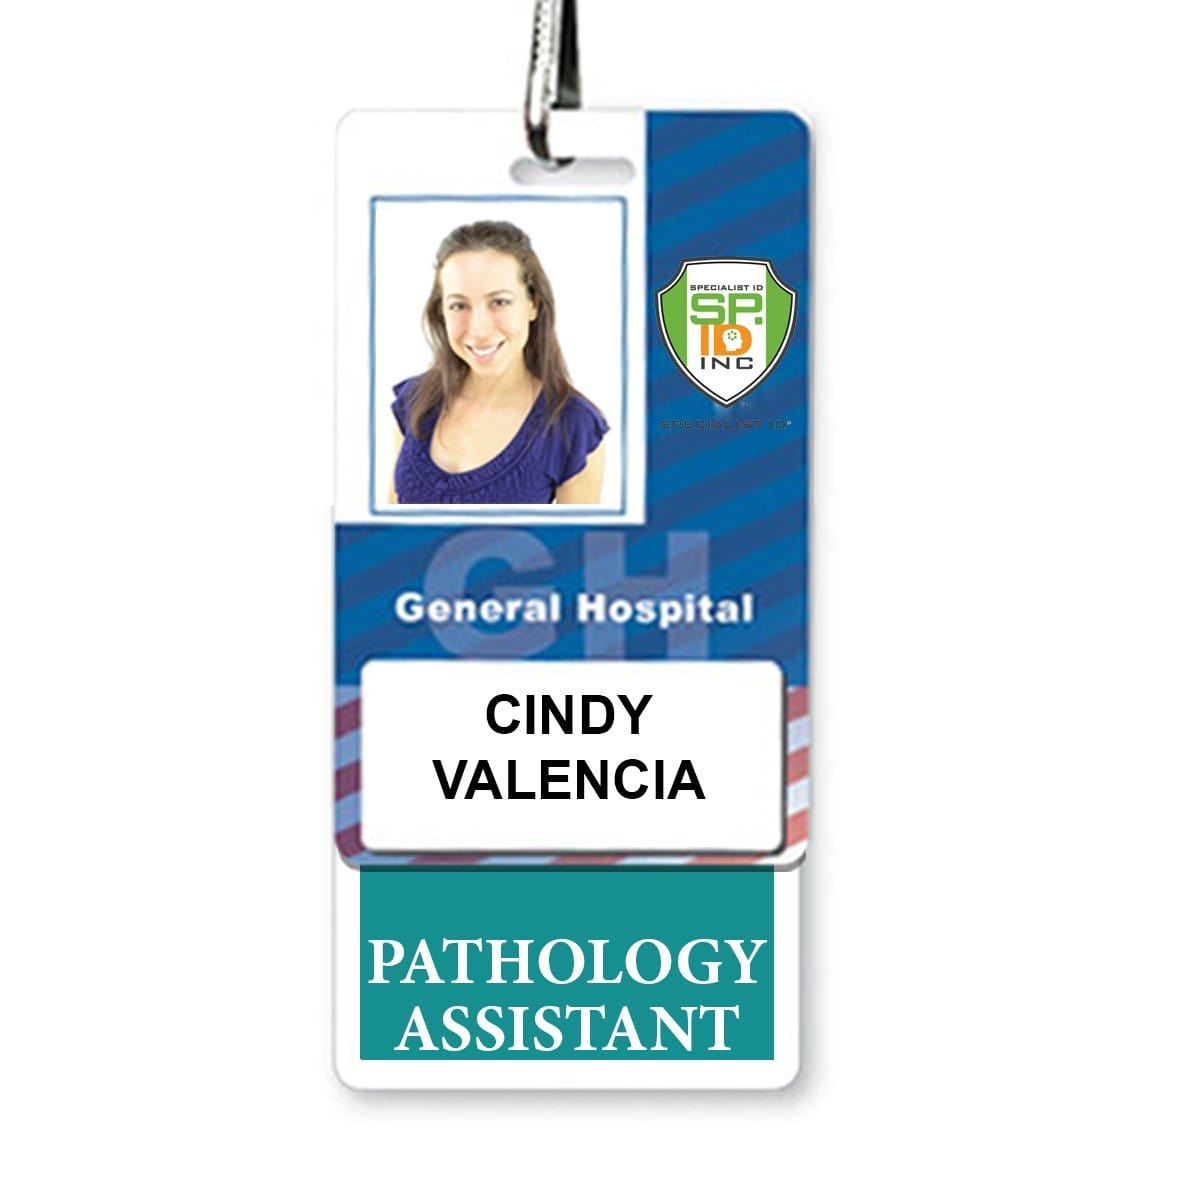 PATHOLOGY ASSISTANT Vertical Badge Buddy with Teal border